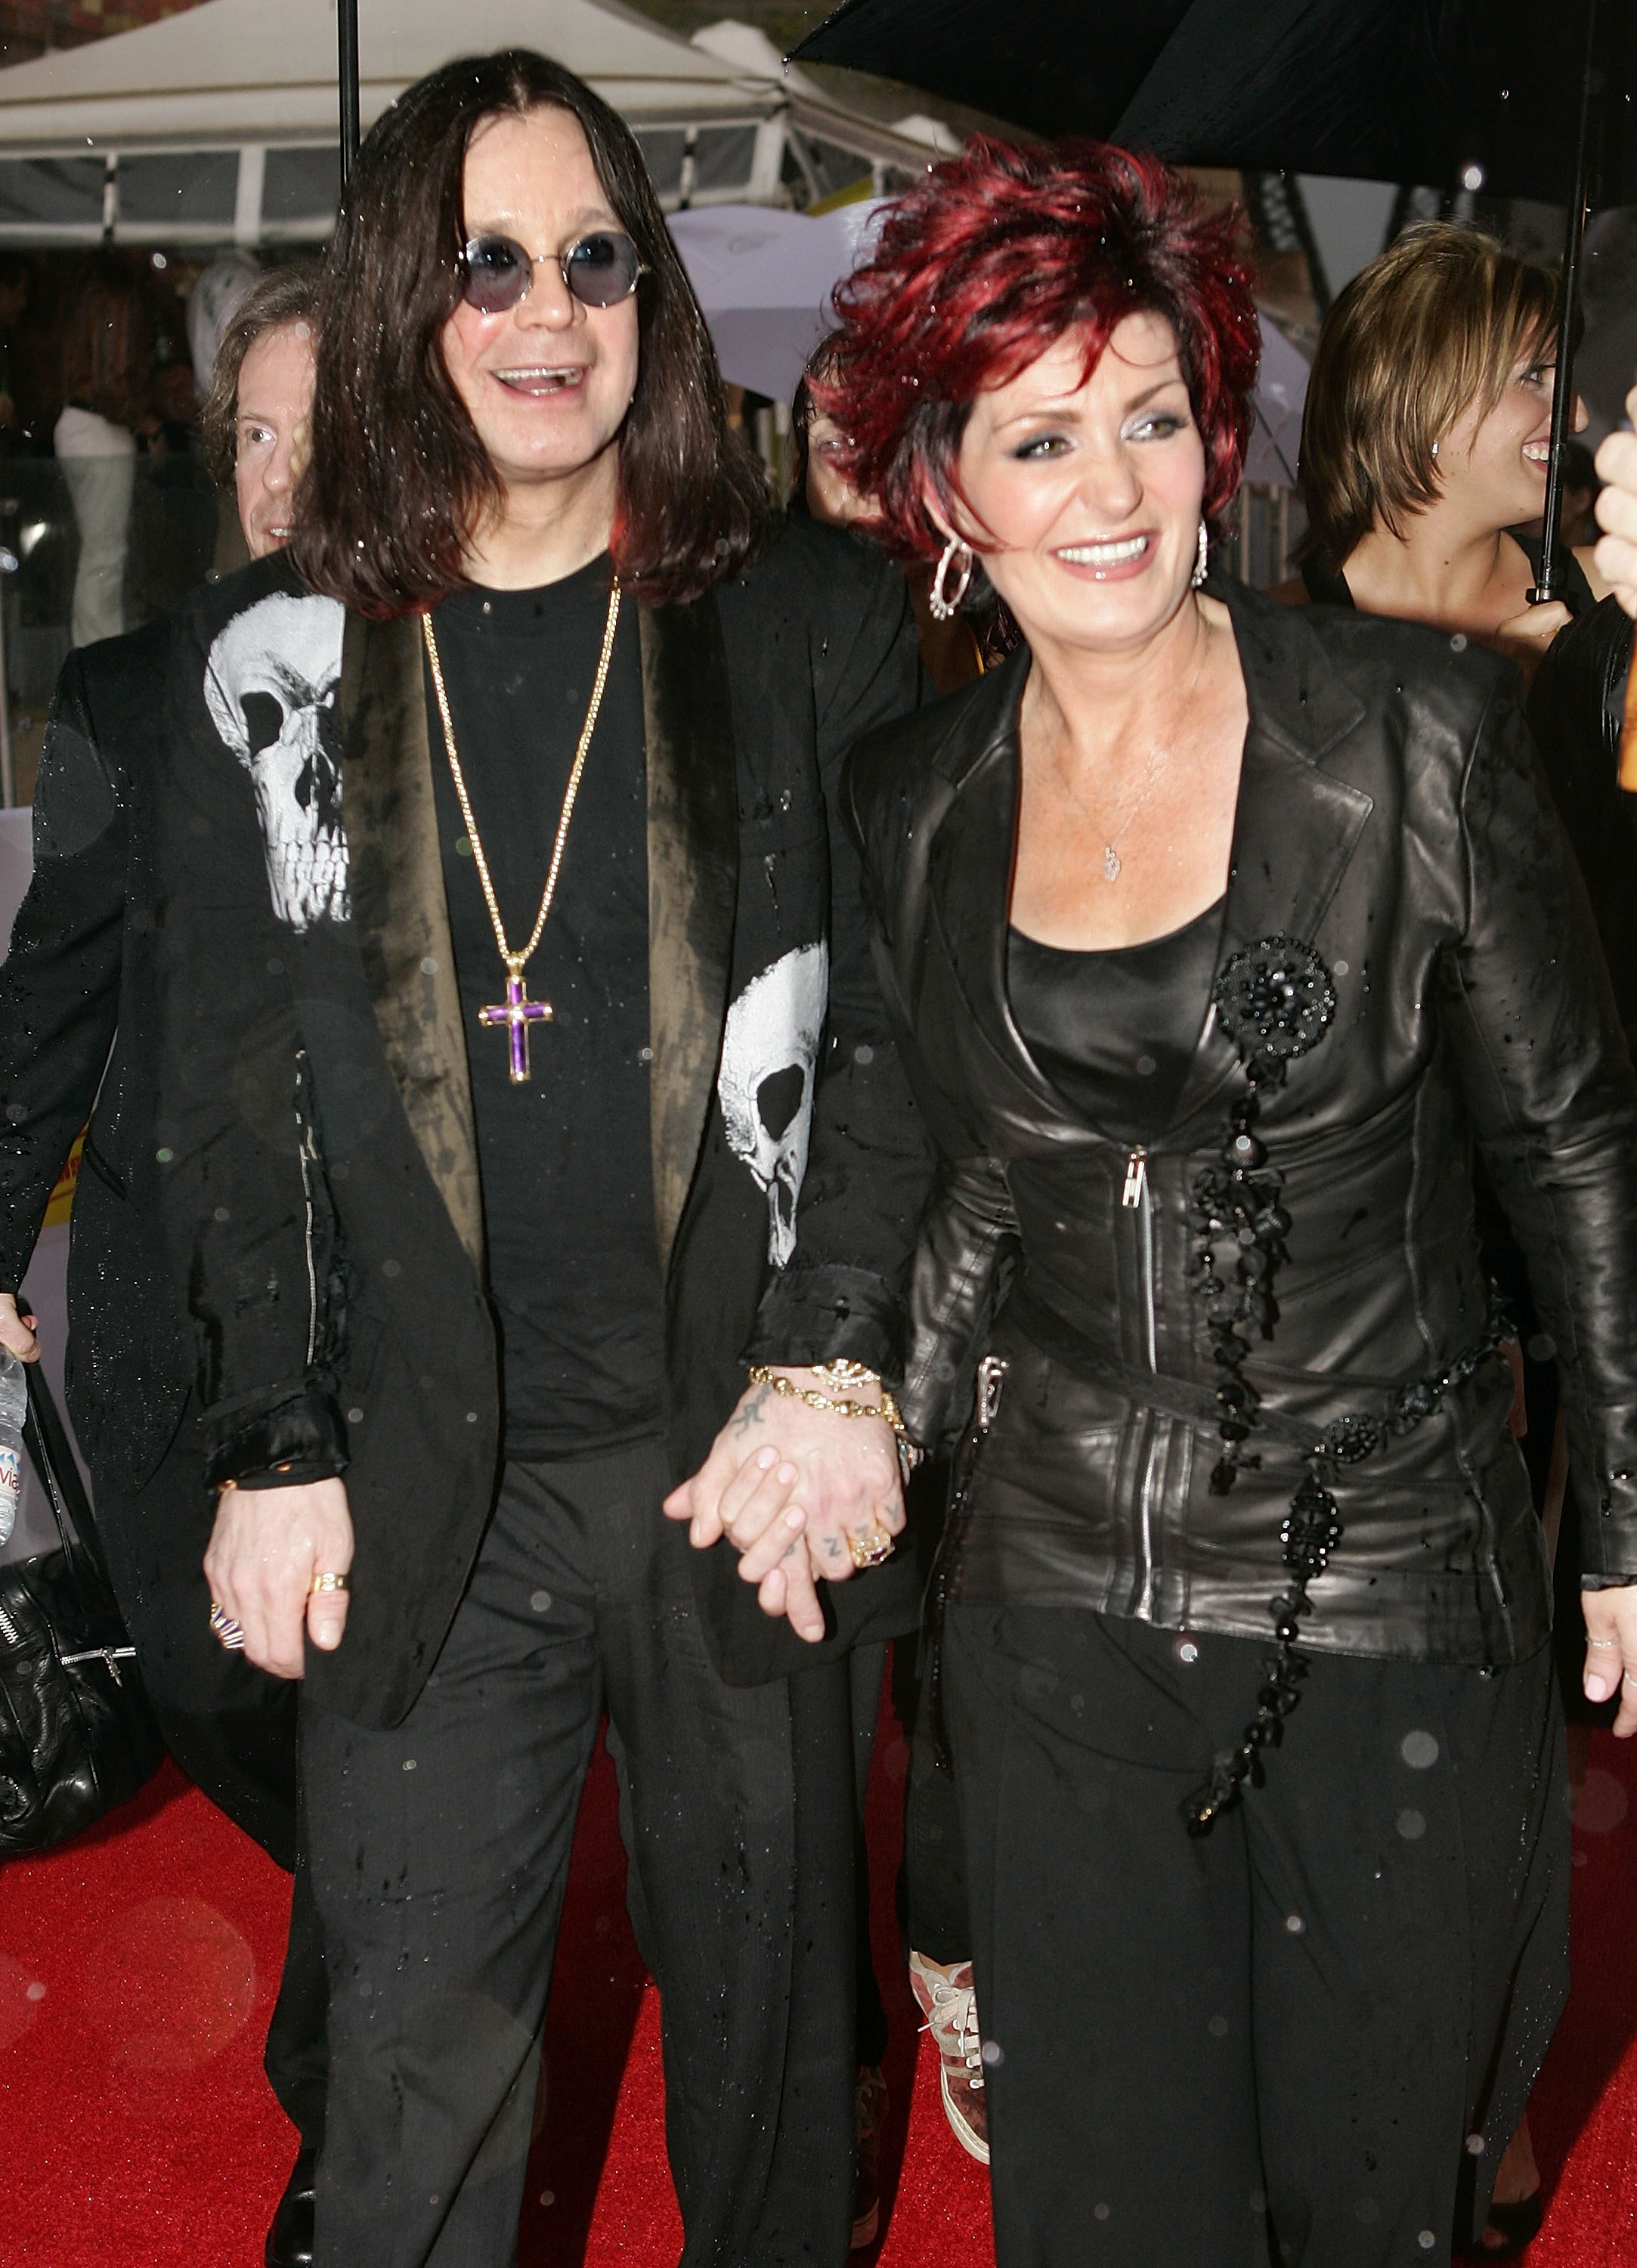 Ozzy Osbourne and Sharon Osbourne (Source: Getty Images)